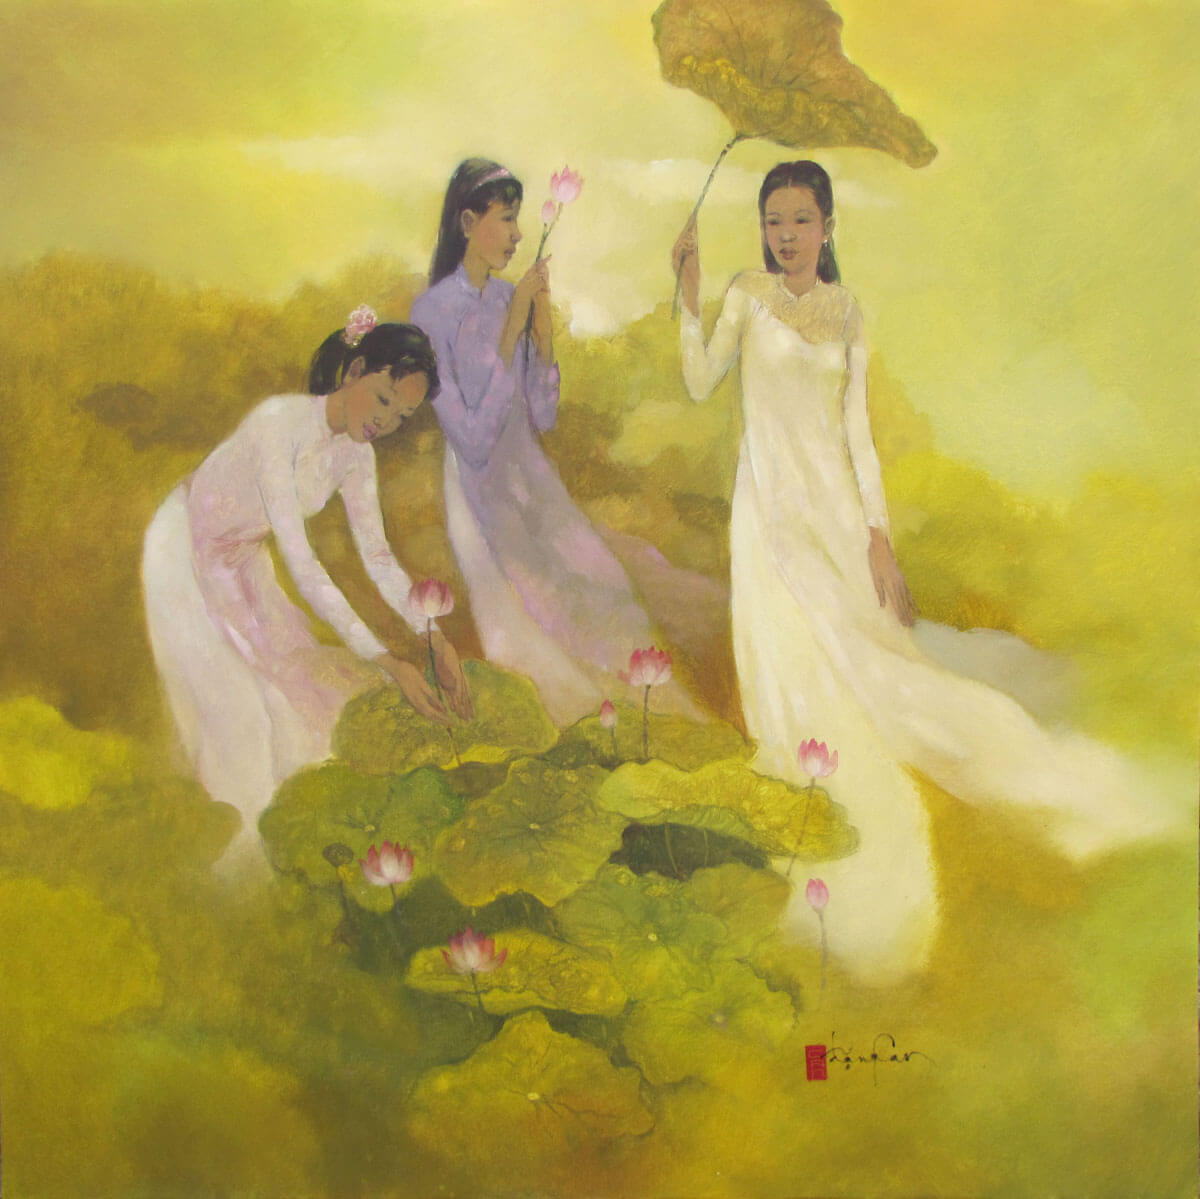 Ladies pick lotus flower-Original Vietnamese Art